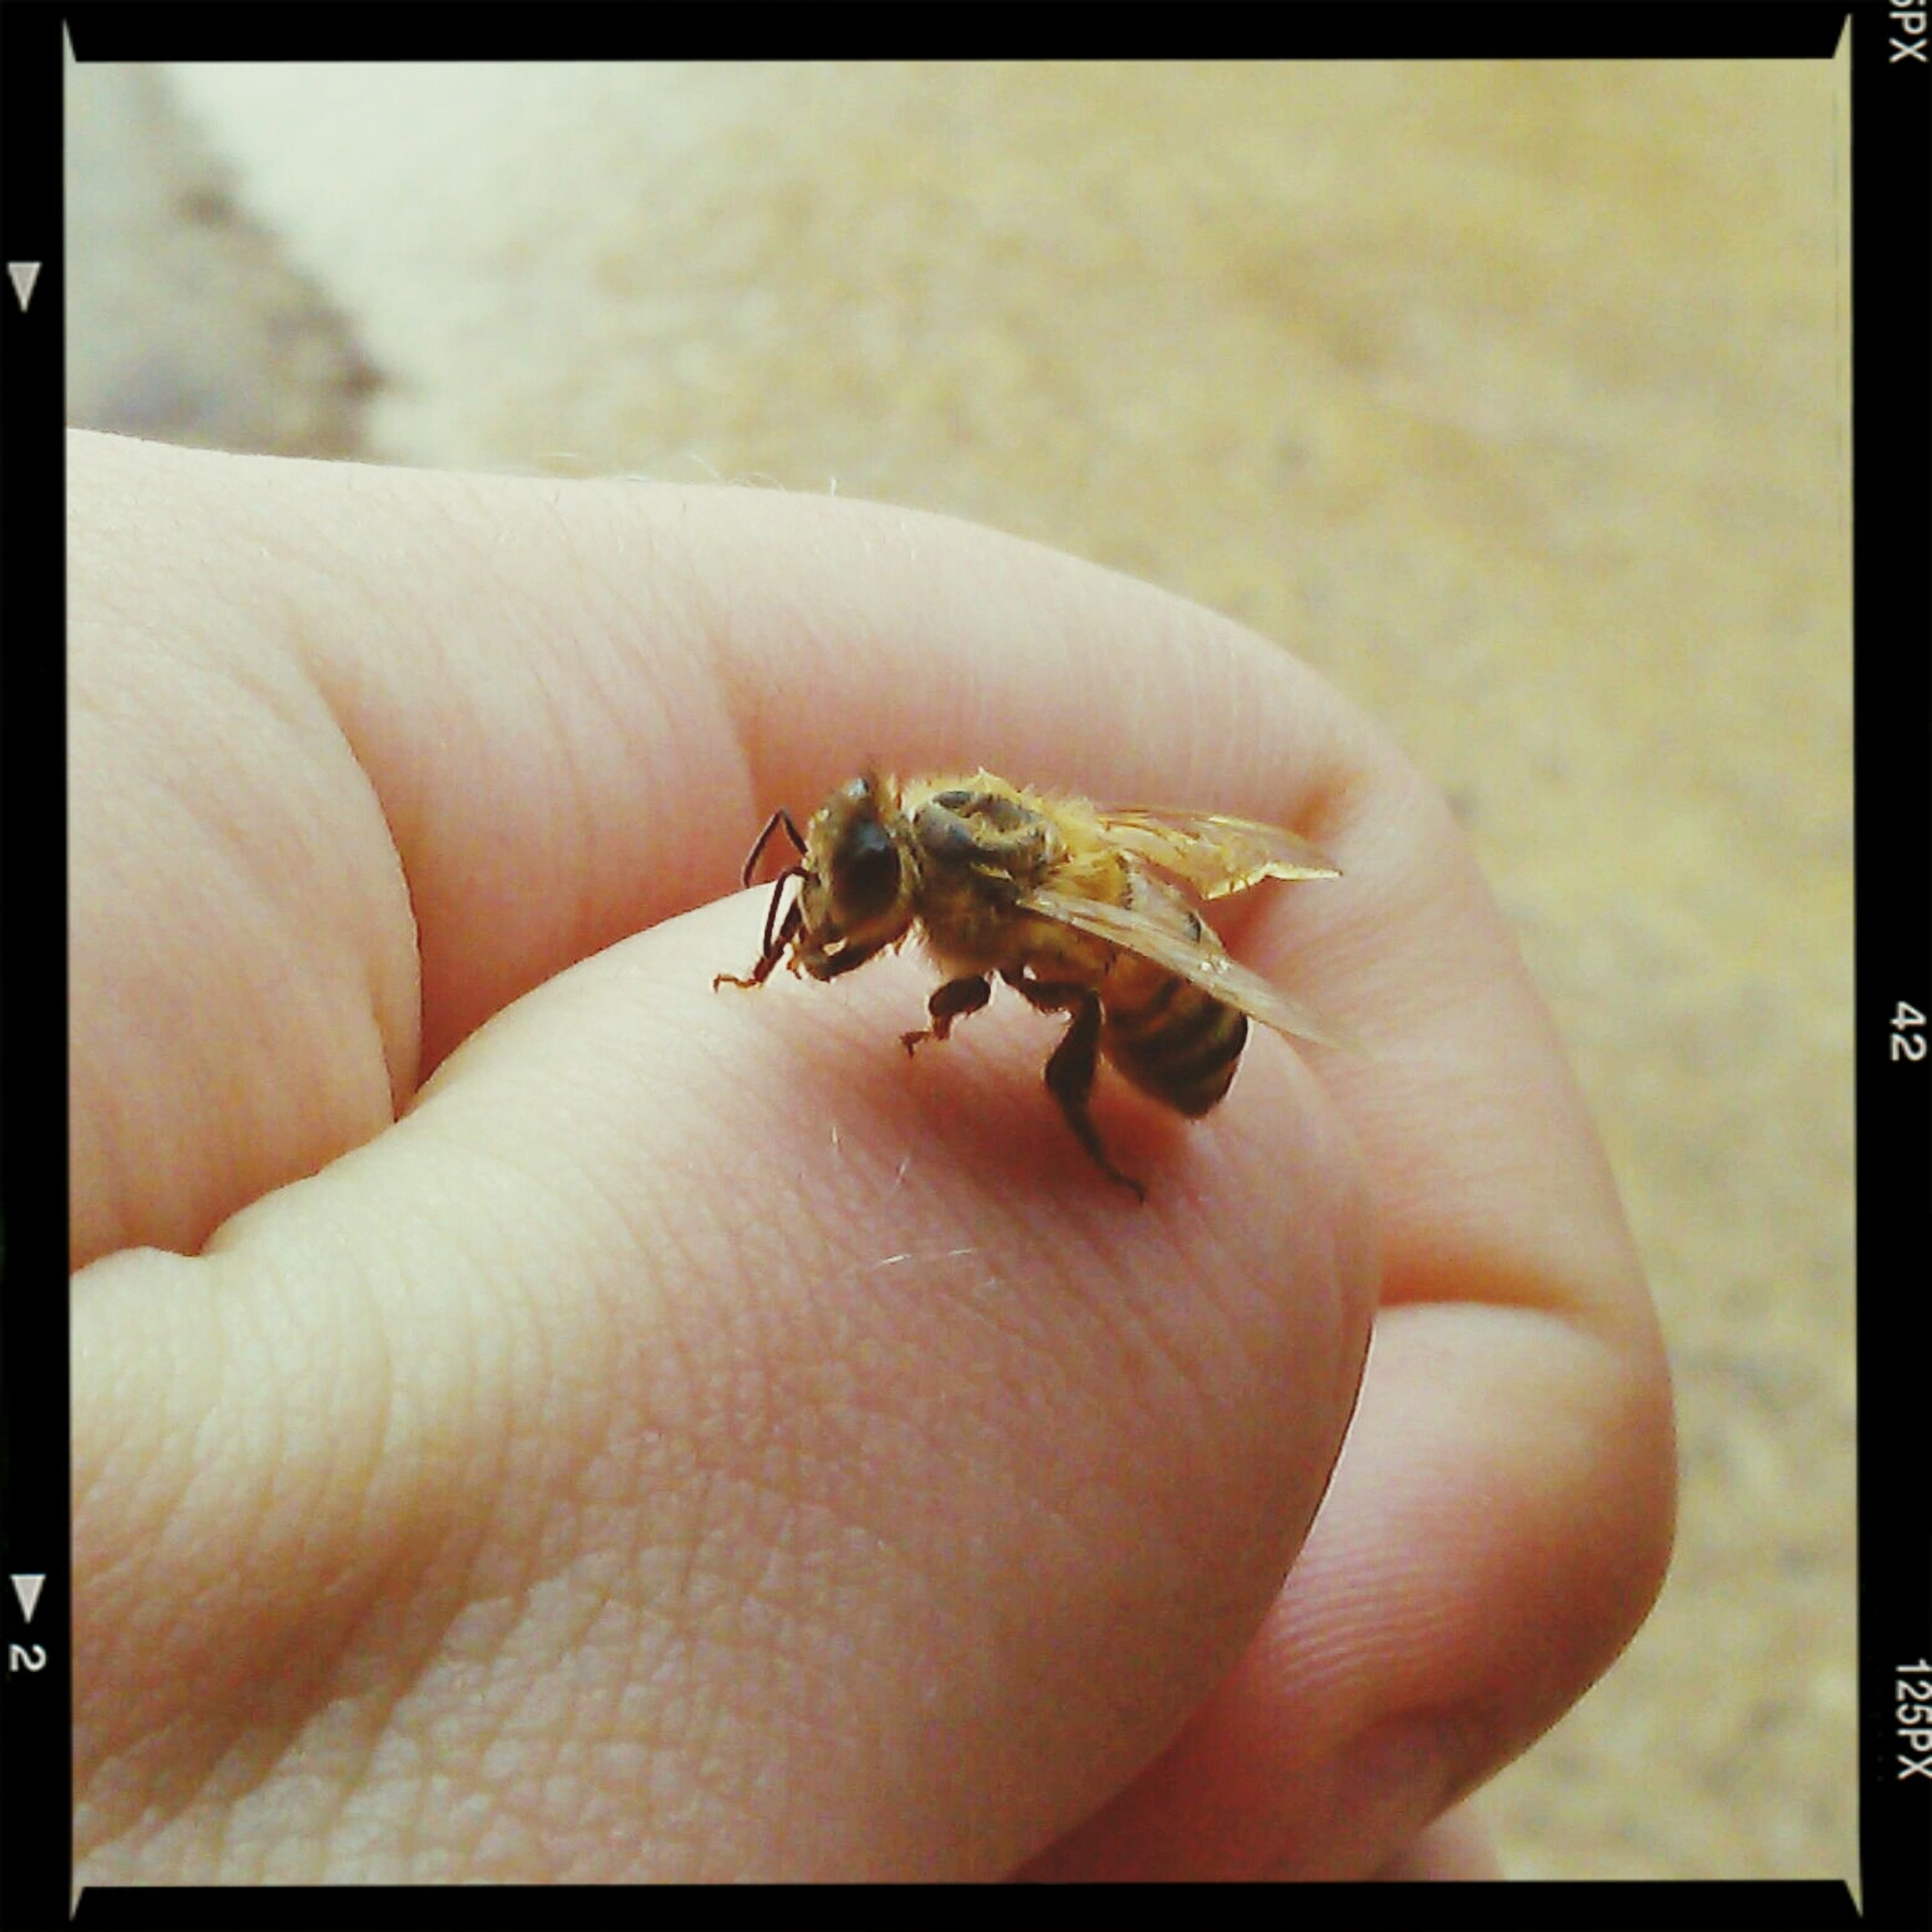 person, animal themes, animals in the wild, wildlife, one animal, human finger, part of, insect, holding, close-up, unrecognizable person, cropped, personal perspective, focus on foreground, zoology, palm, reptile